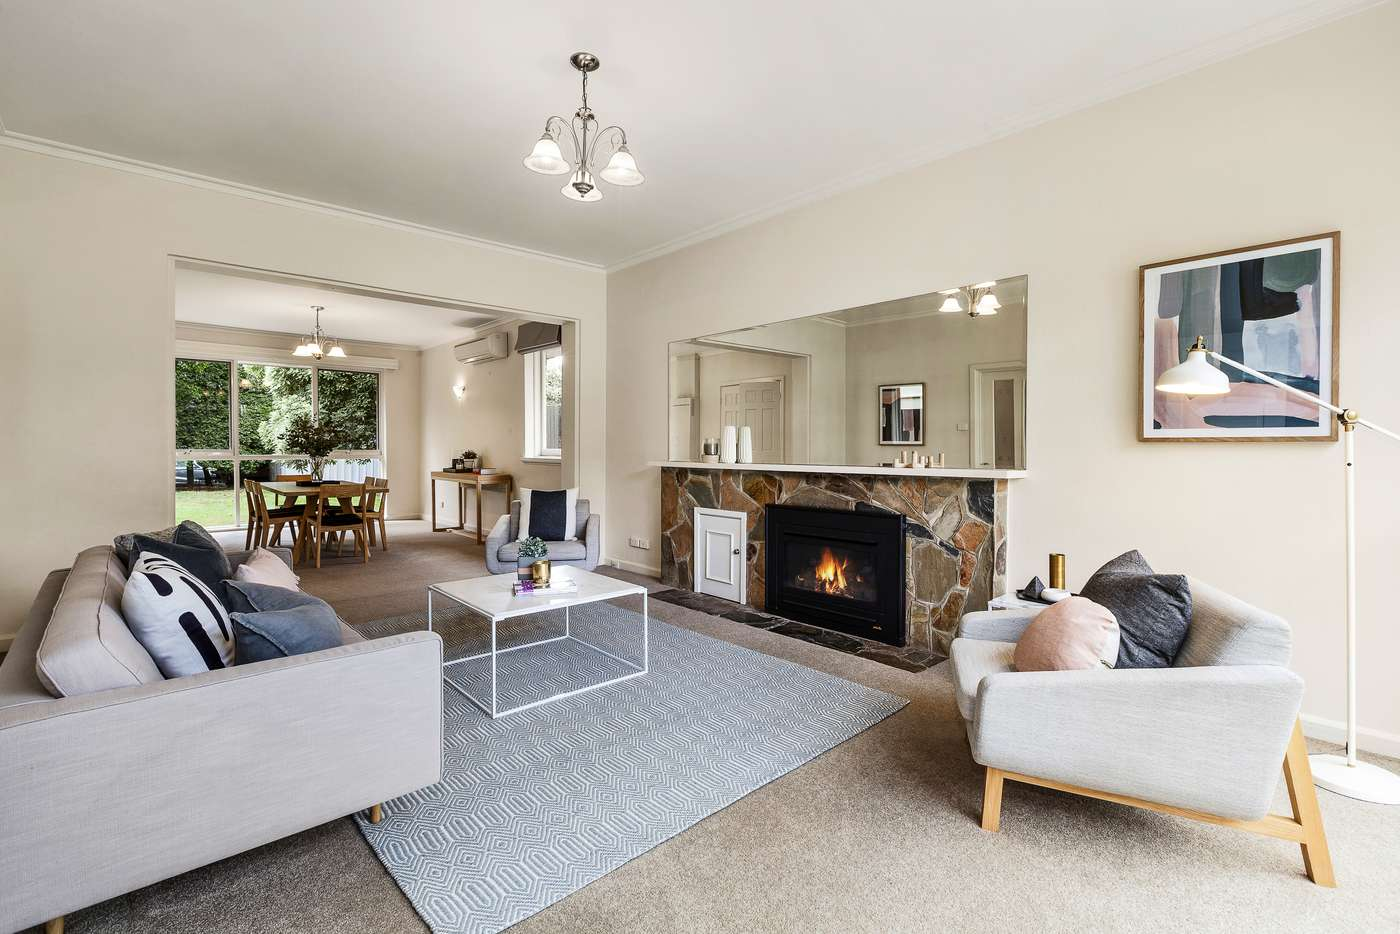 Main view of Homely house listing, 27 Creswick St, Brighton East VIC 3187